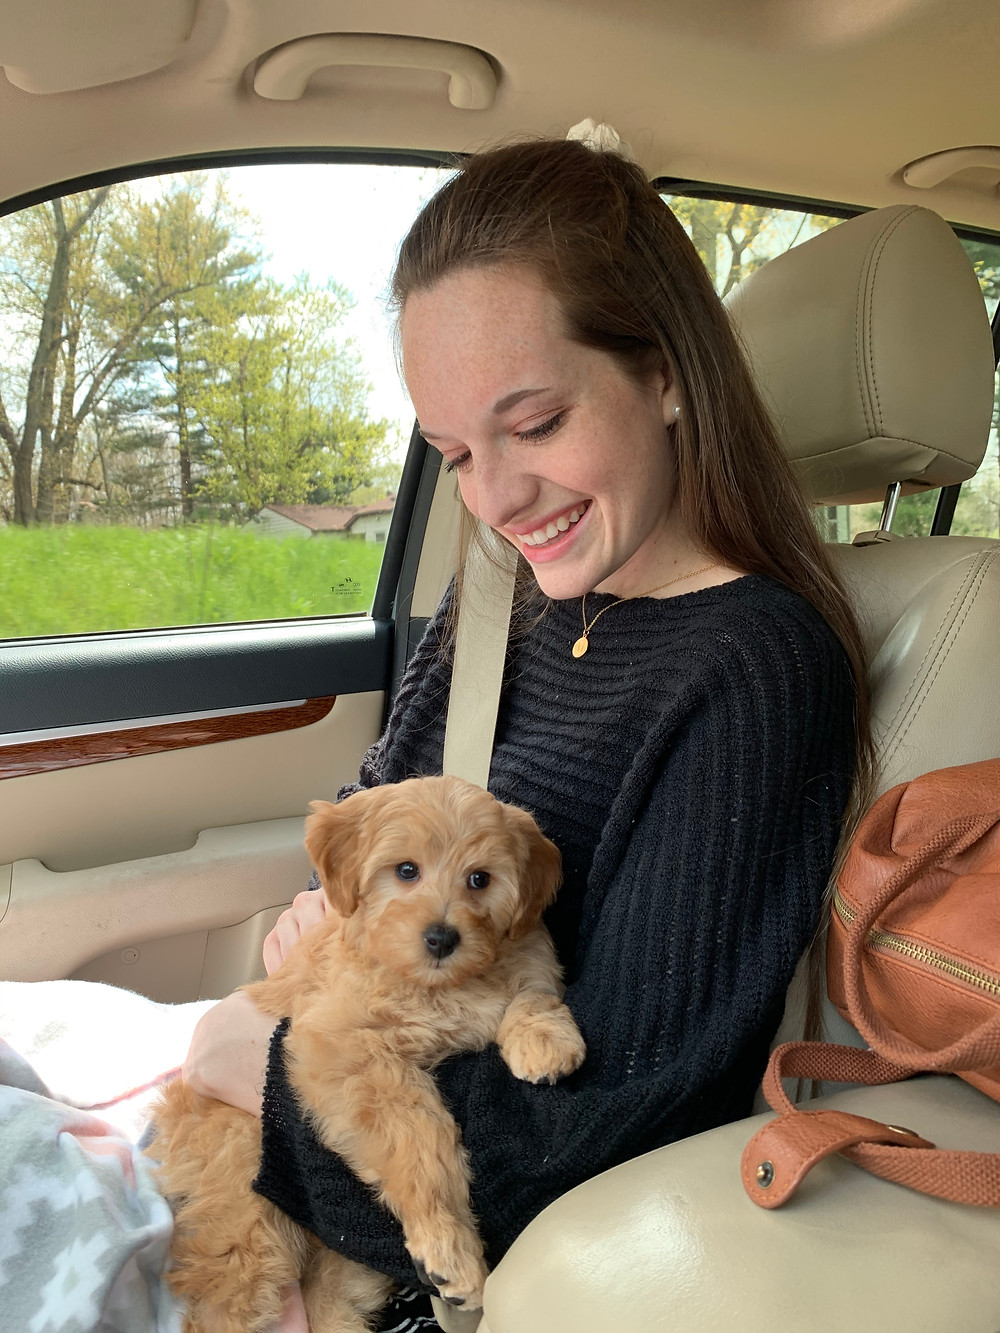 Holding our new mini golden doodle puppy as we drive home from the dog breeder in the car.